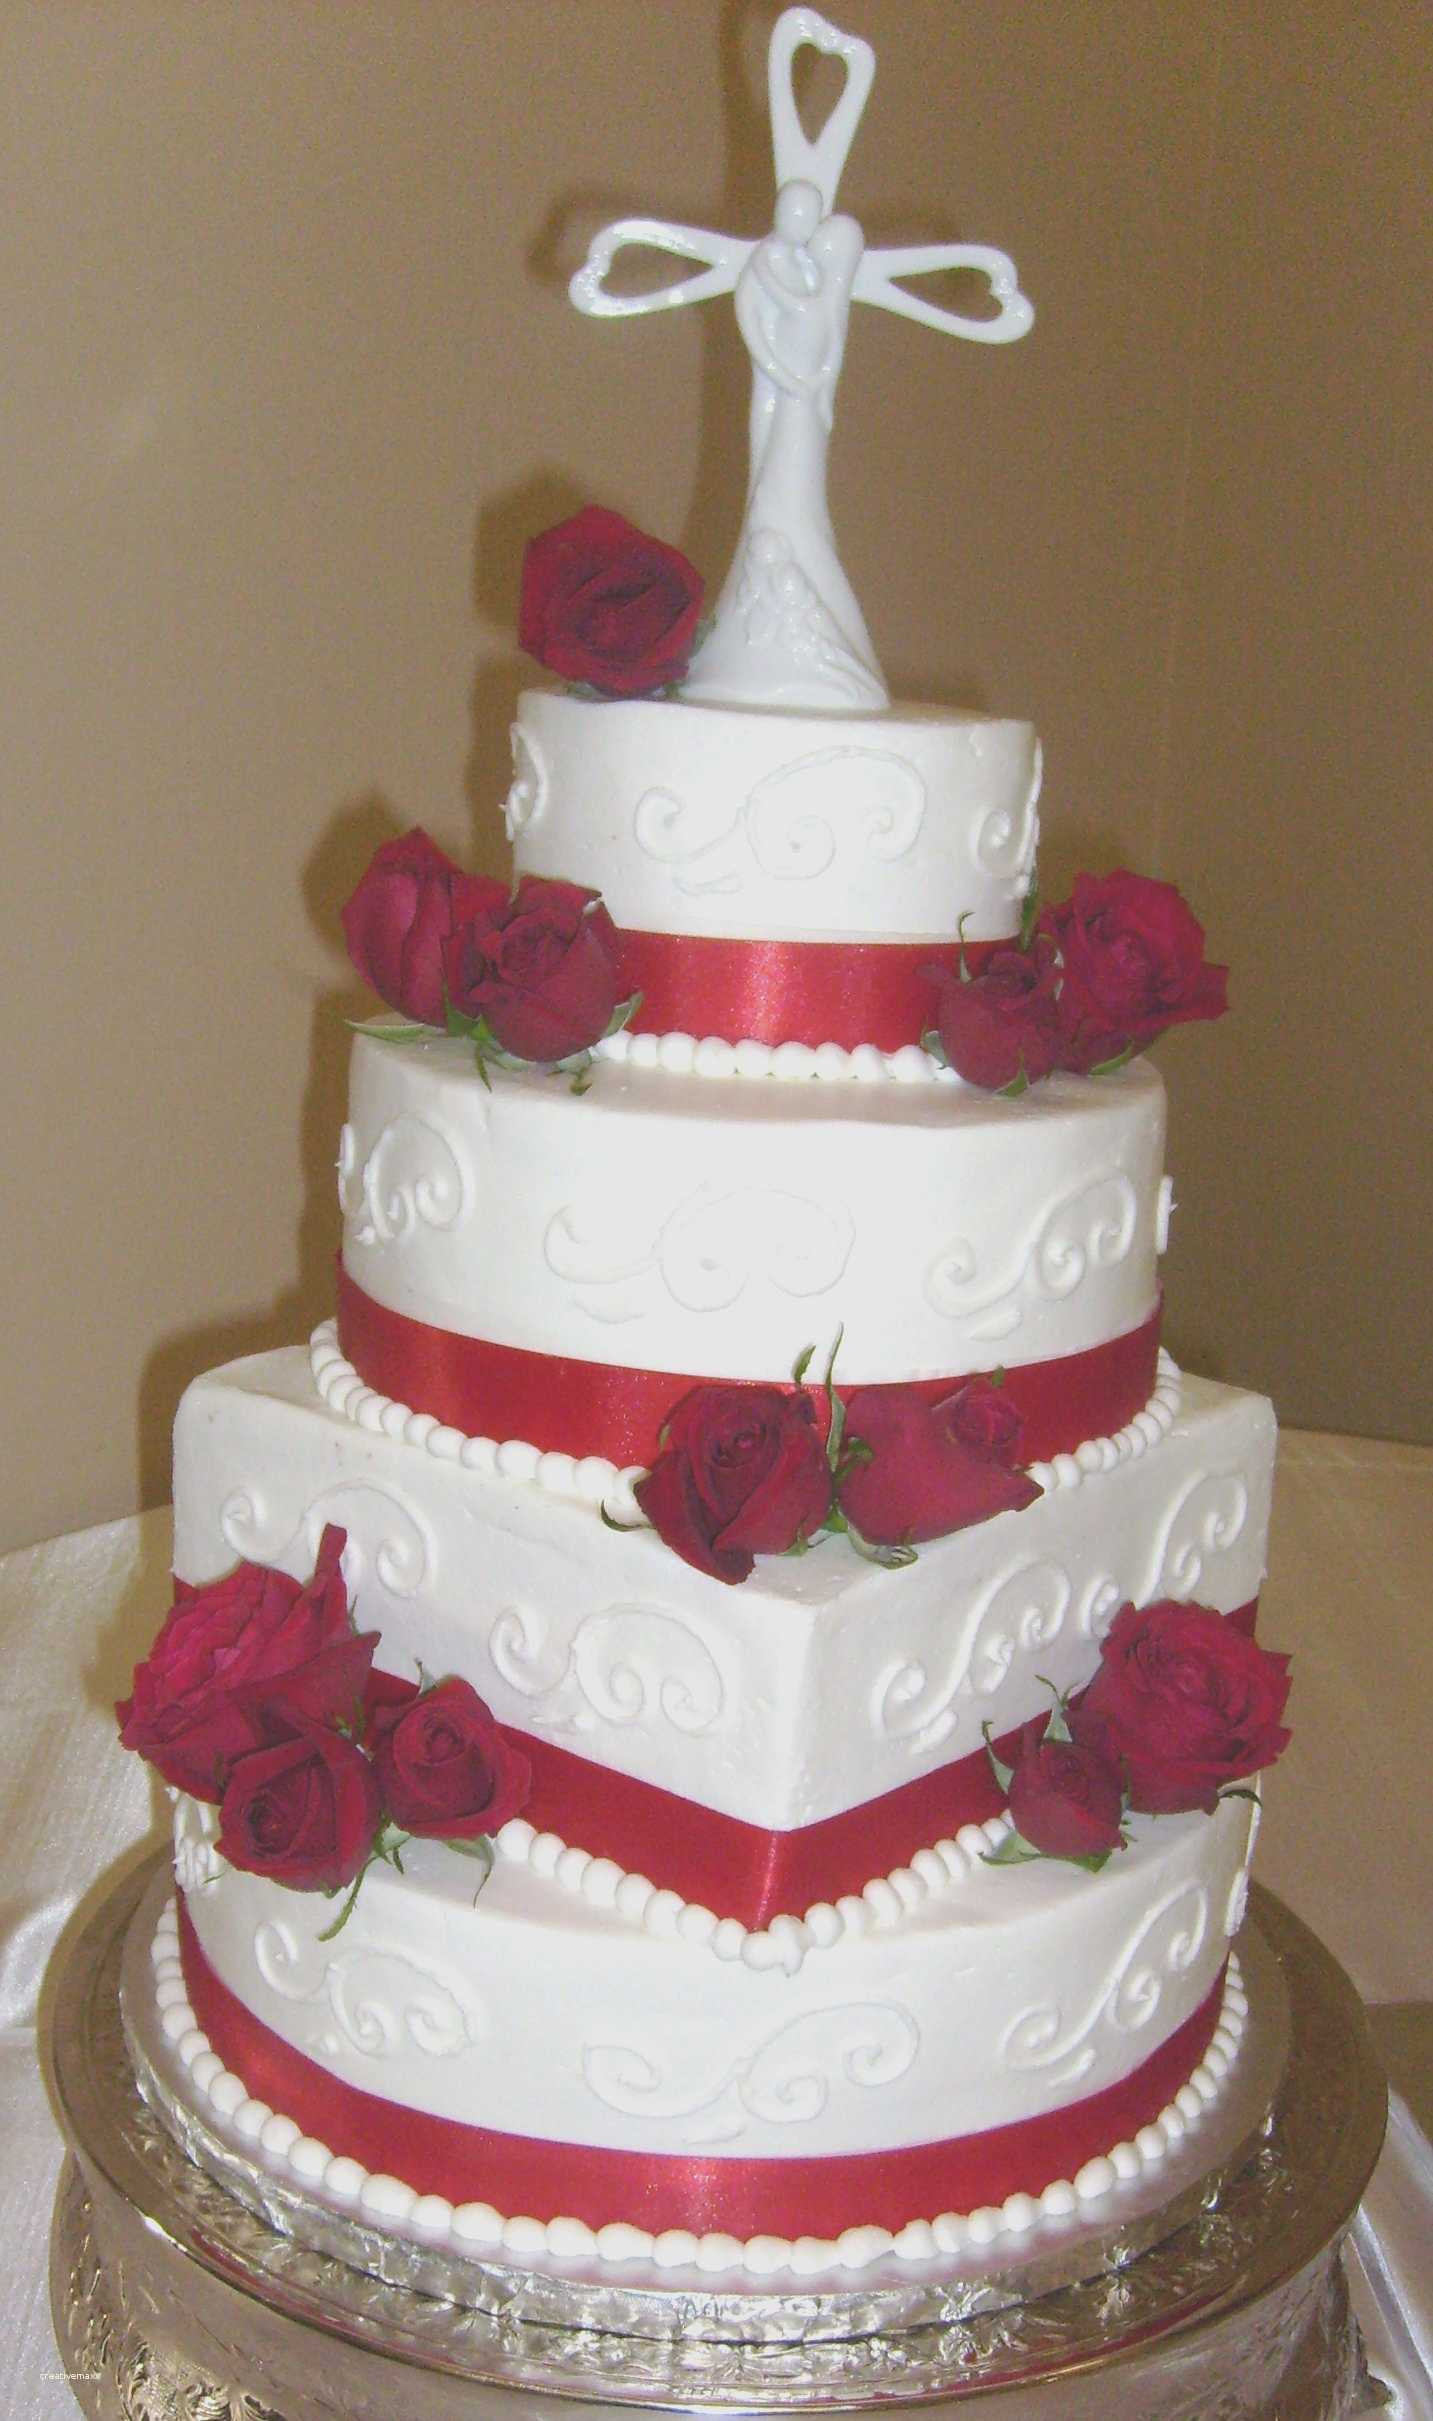 Cheap Wedding Cakes Las Vegas  Unique wedding cupcakes beautiful cheap wedding cakes las